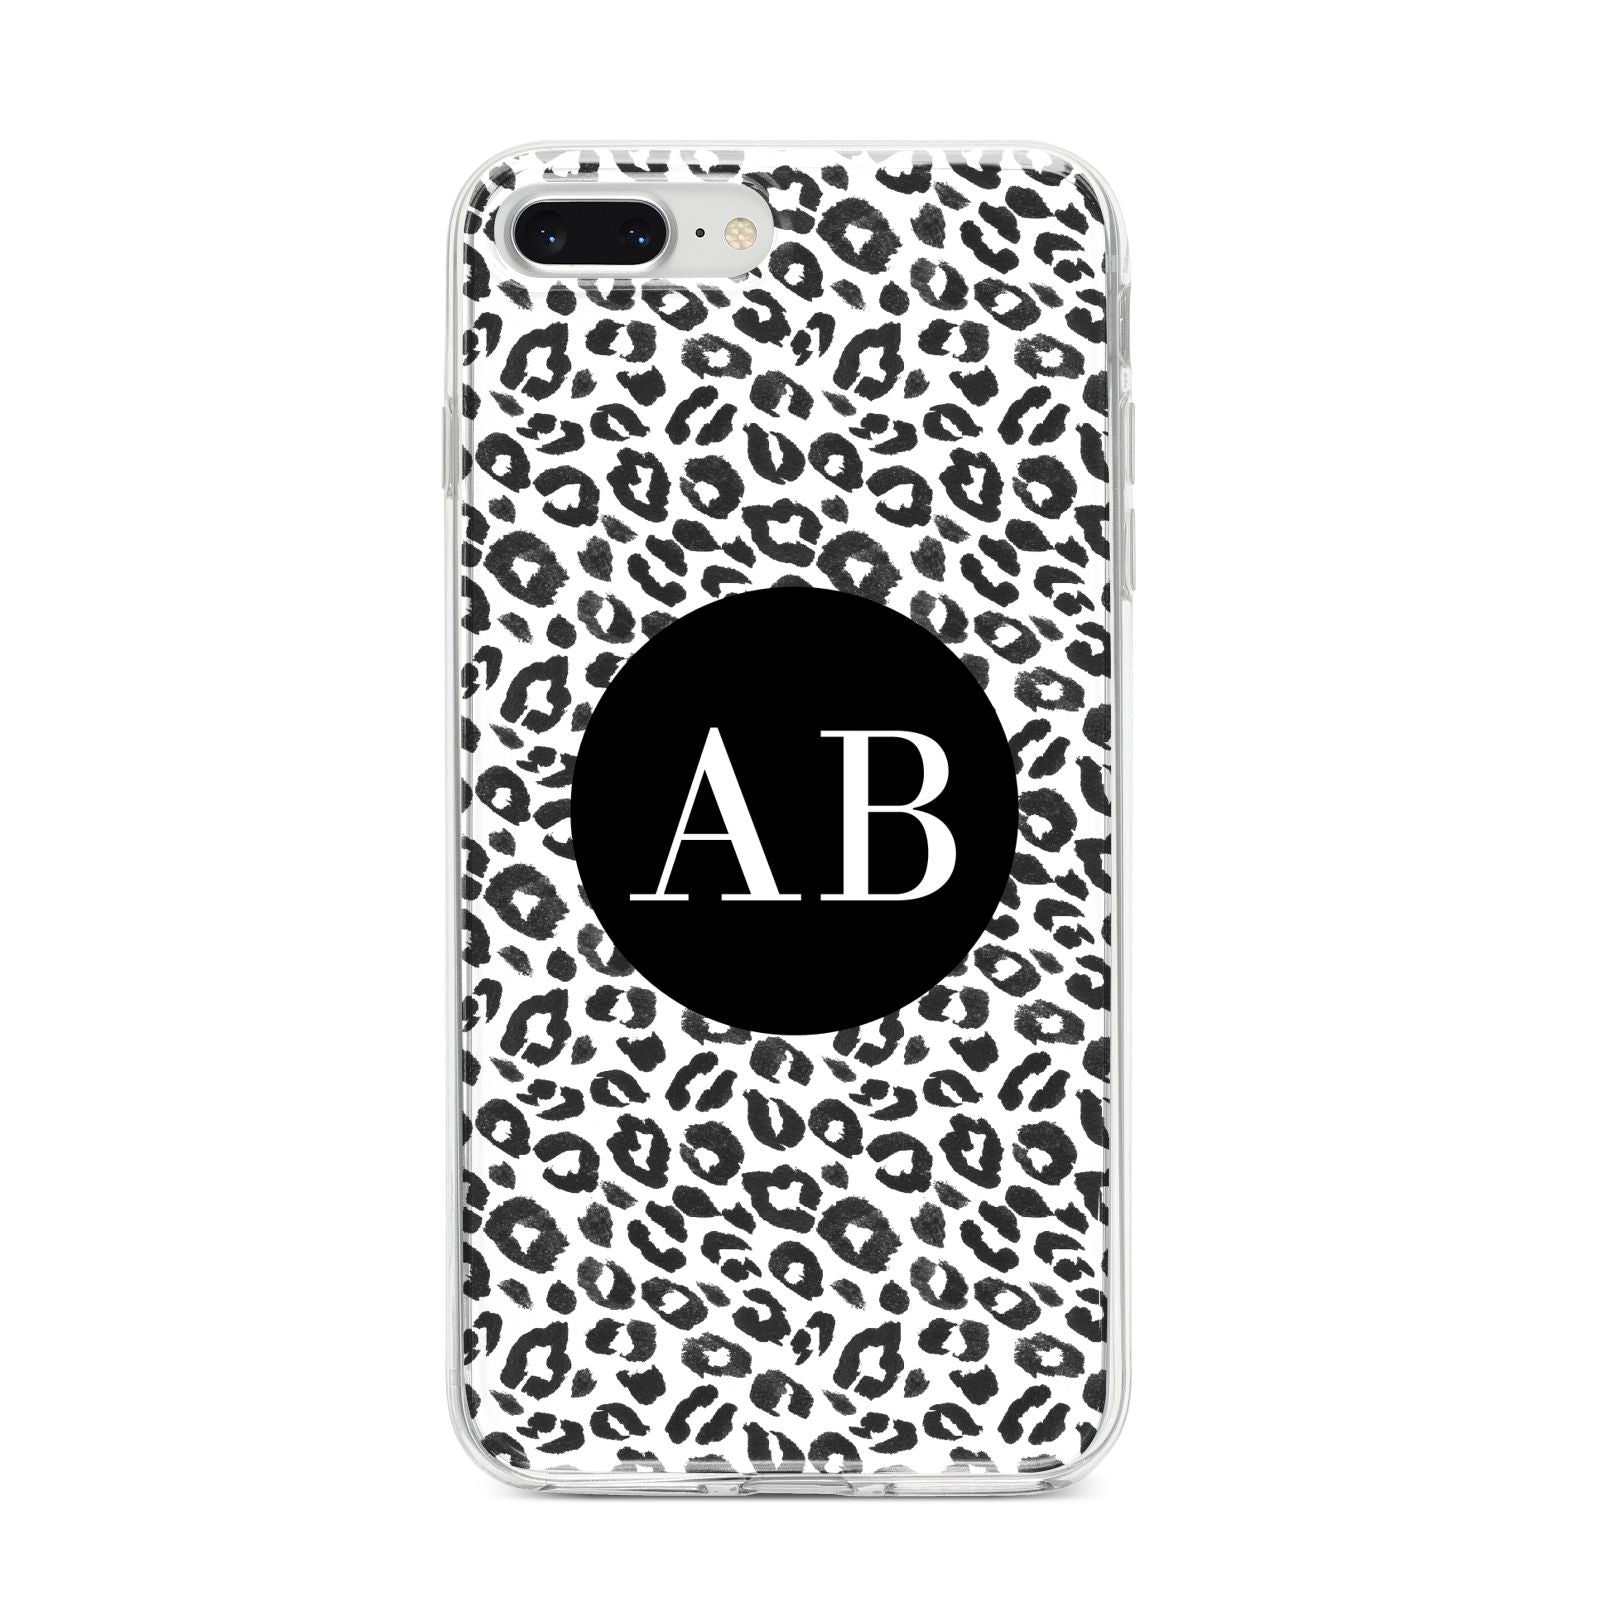 Leopard Print Black and White iPhone 8 Plus Bumper Case on Silver iPhone